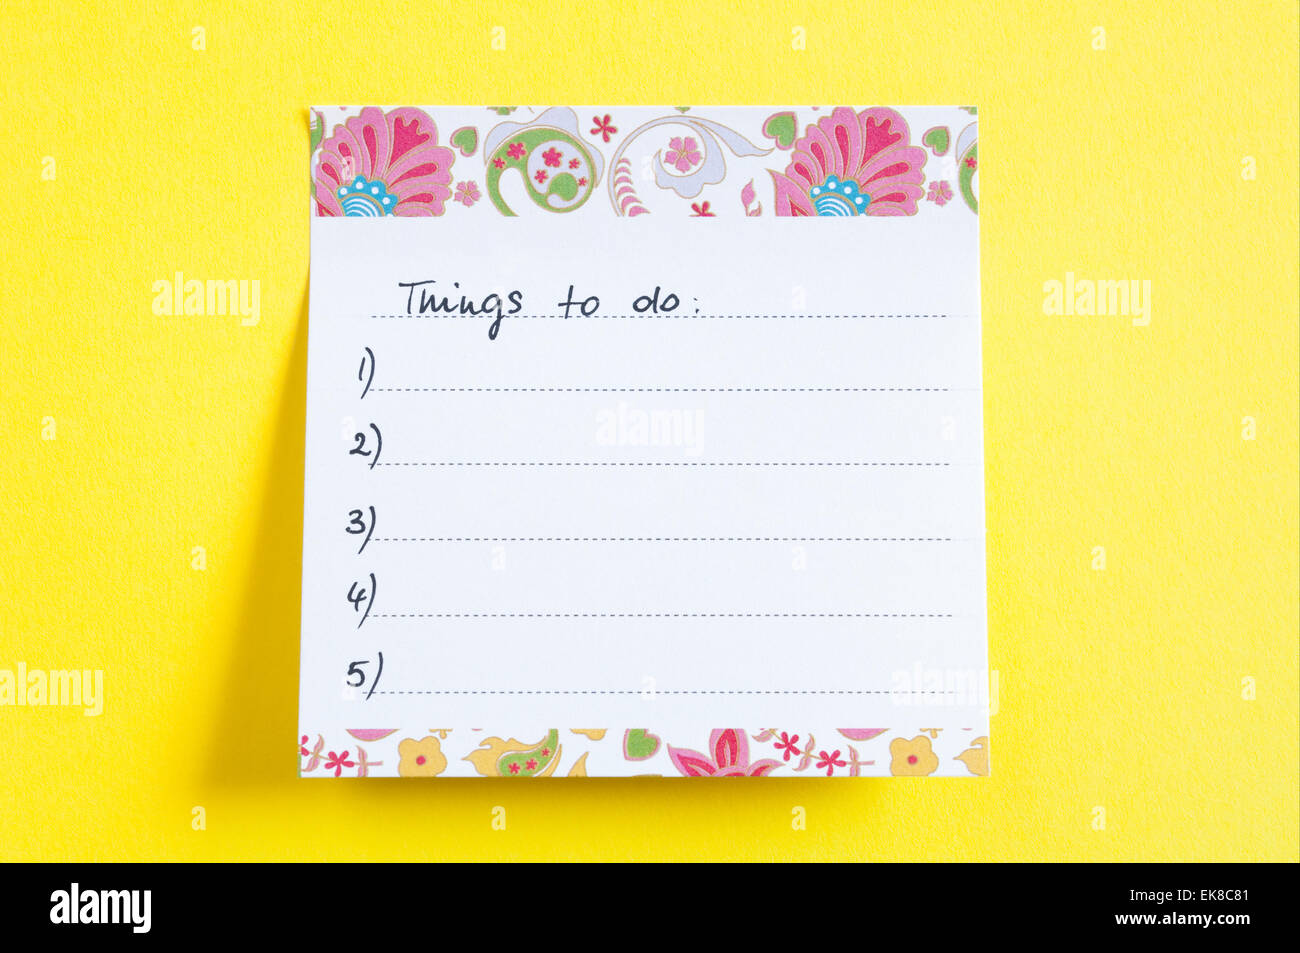 Things To Do List - Stock Image